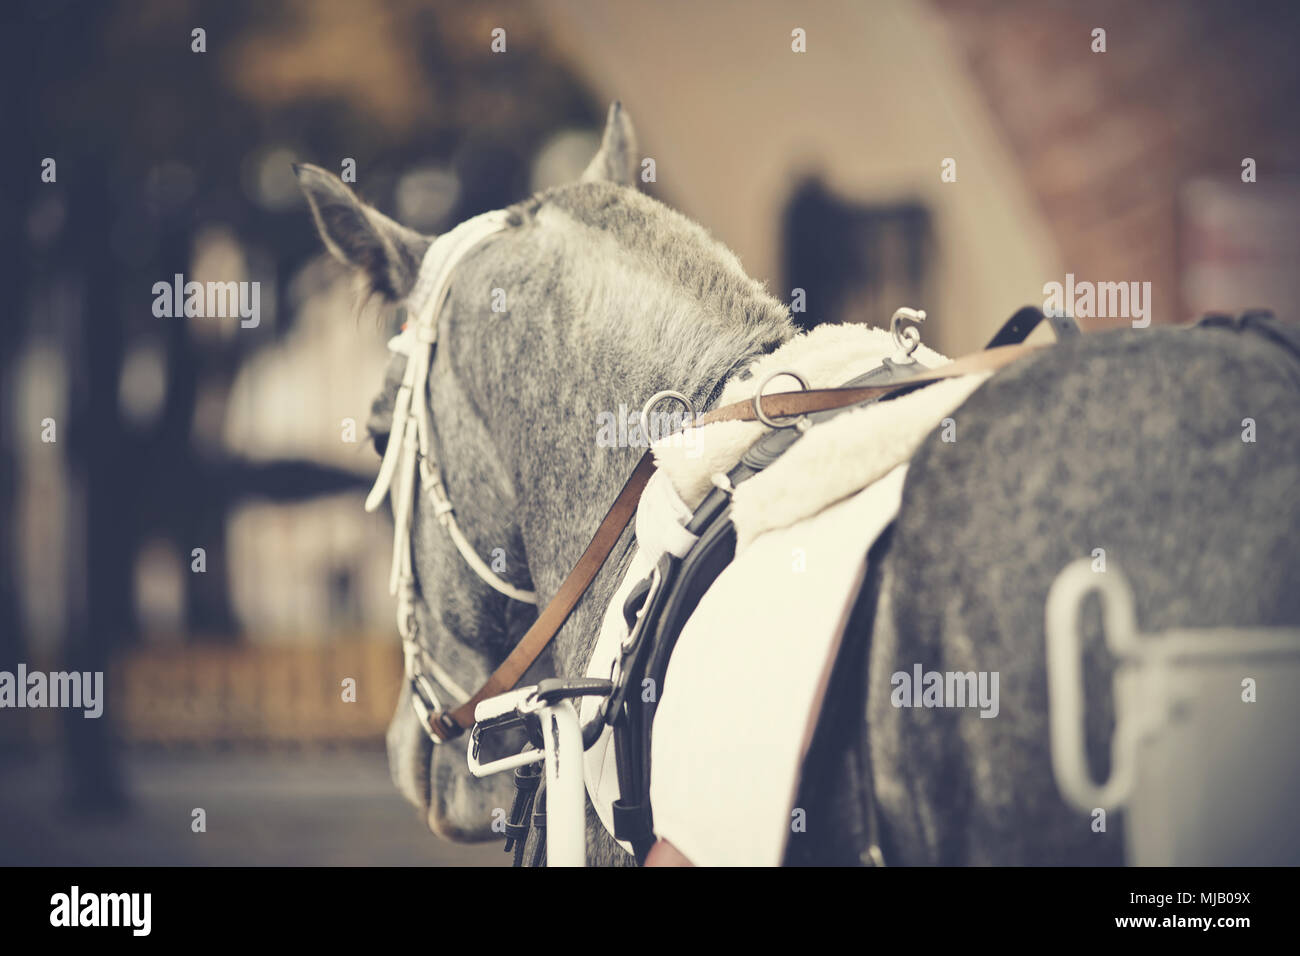 Horse-drawn transport.The back of the gray horse harnessed in the carriage - Stock Image